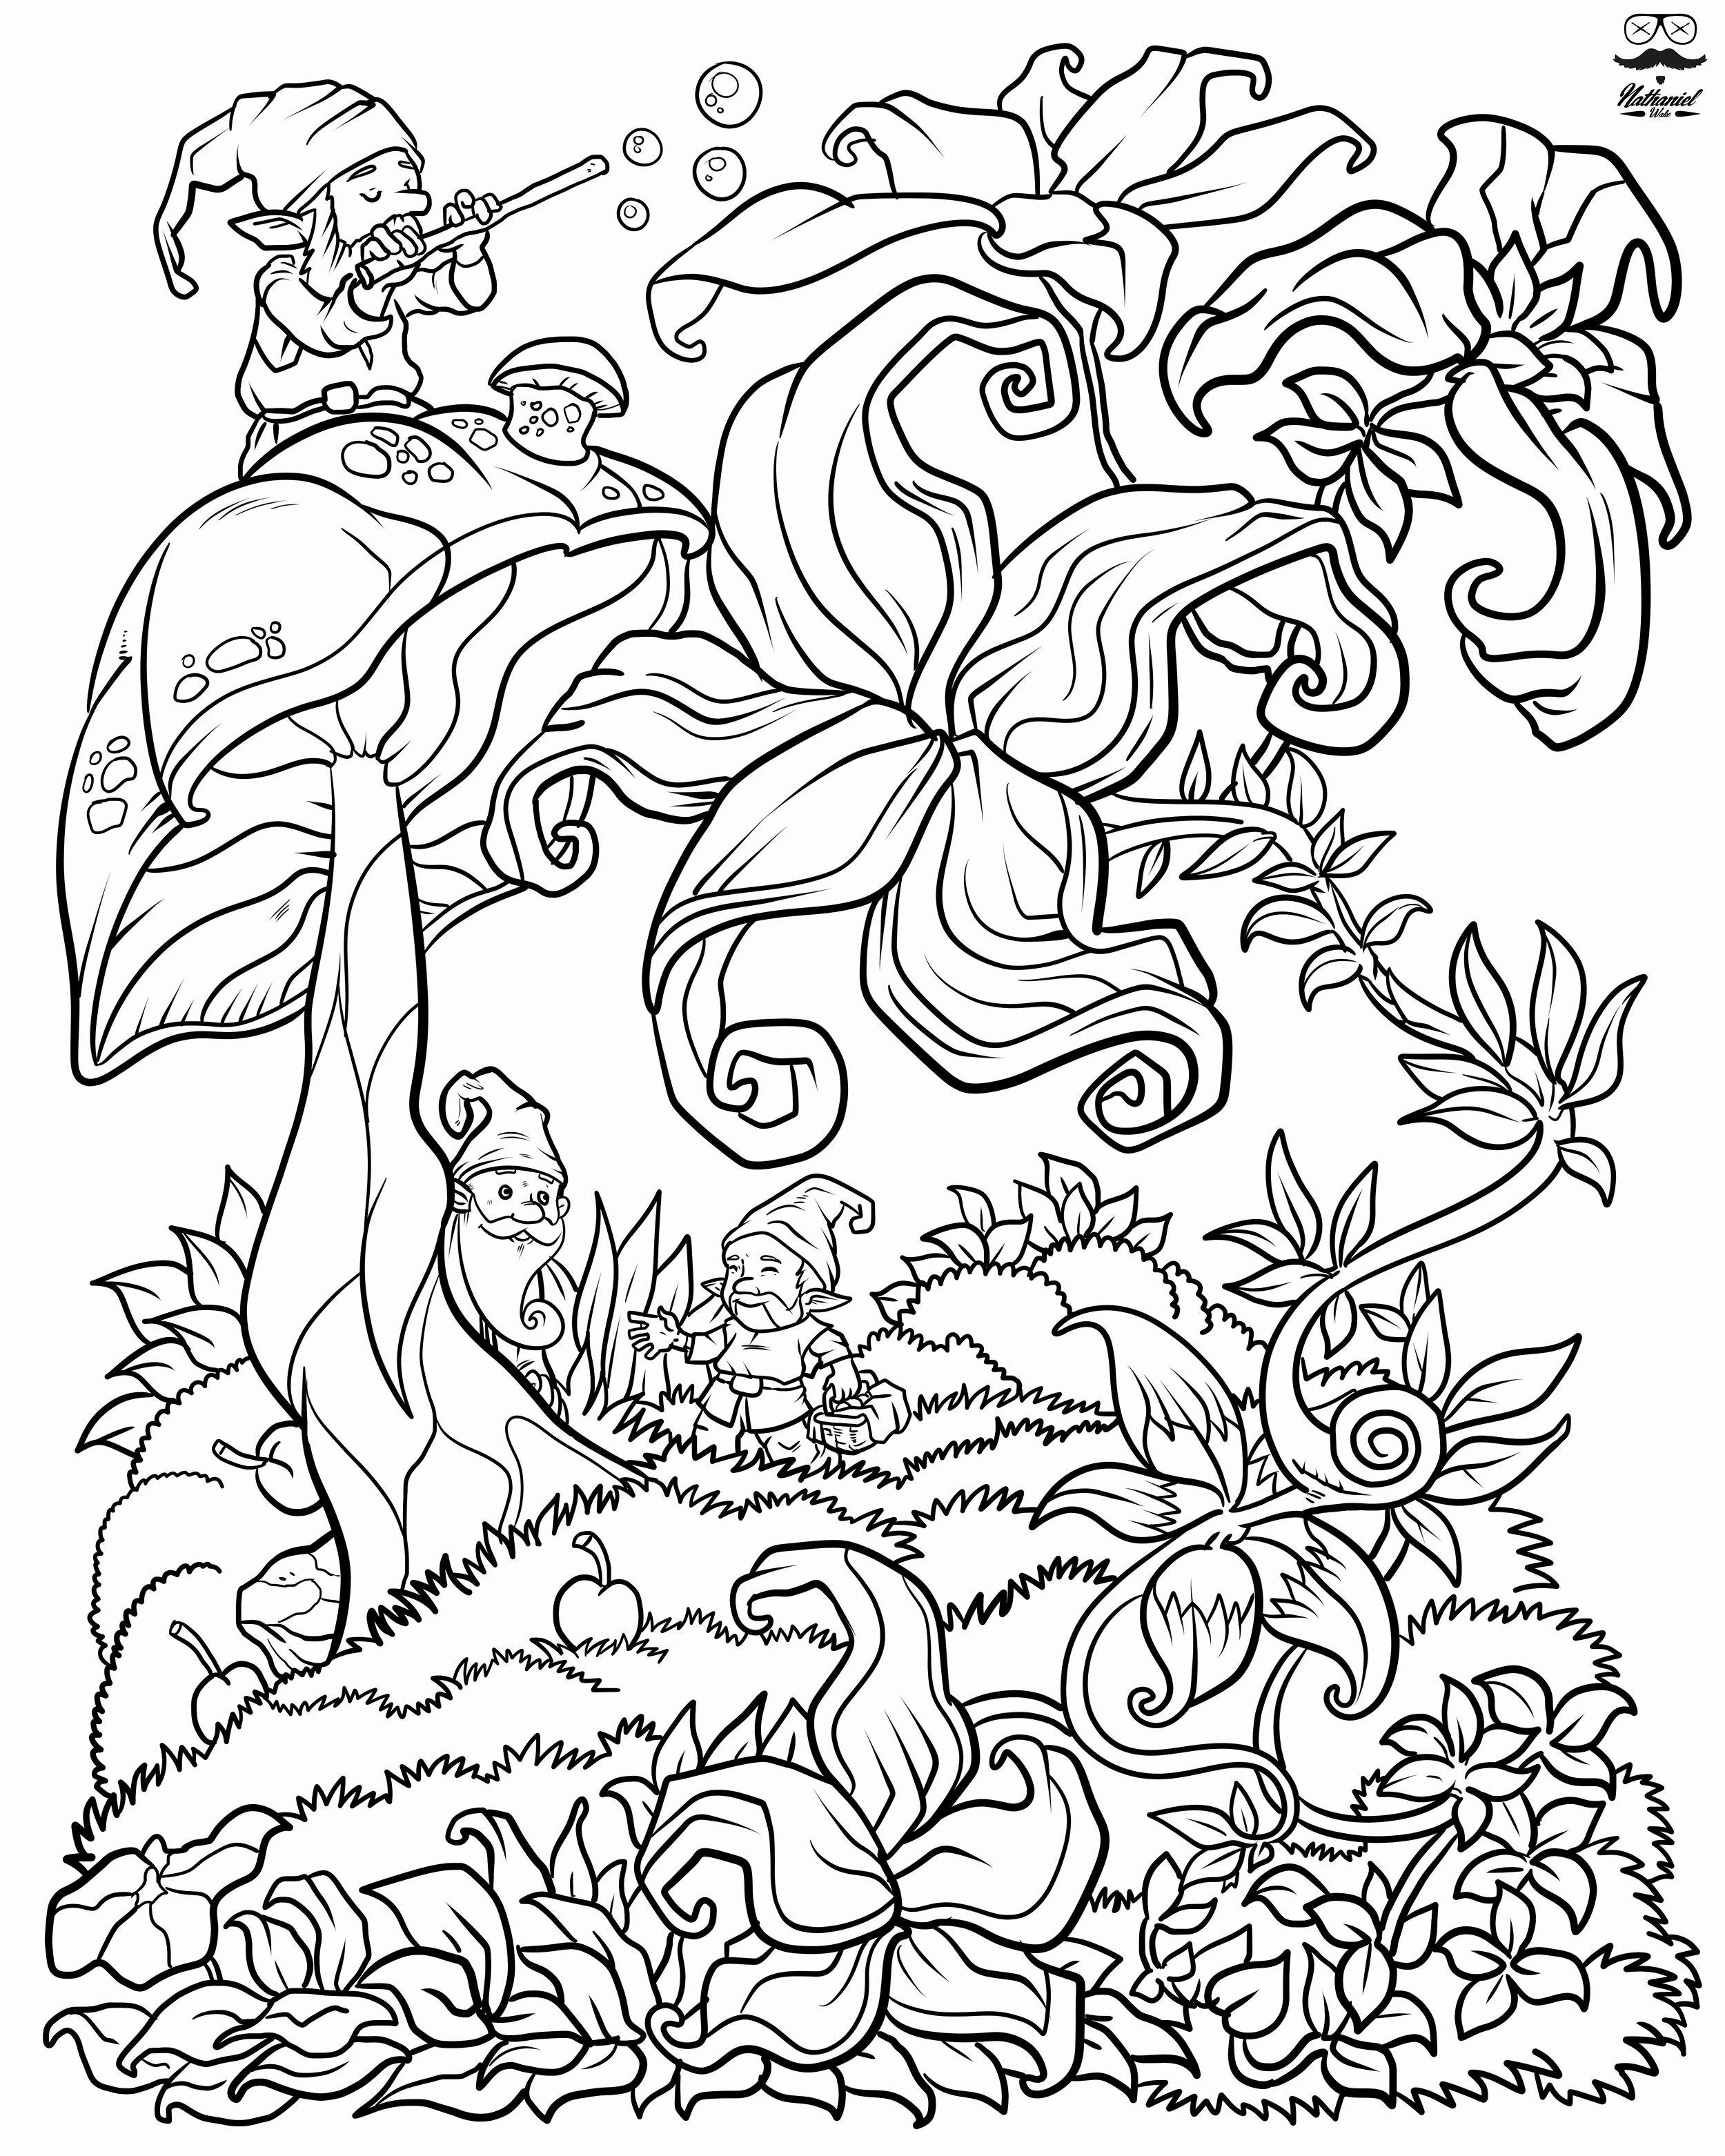 Pin On Coloring Page Books Ideas [ 3125 x 2500 Pixel ]